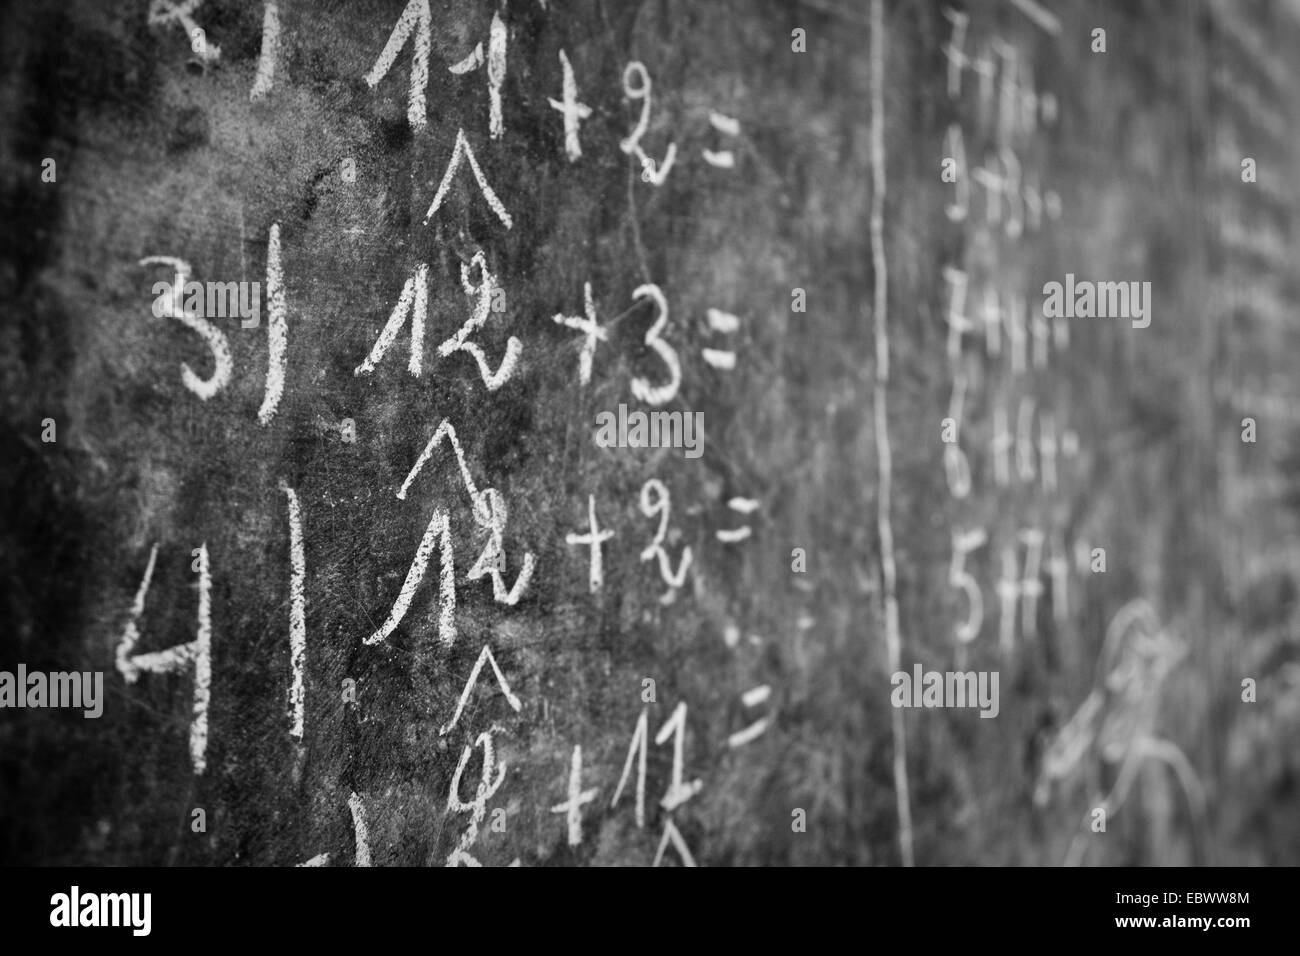 blackboard with calculations in the classroom of an aid organization teaching former street urchins handcrafts and - Stock Image